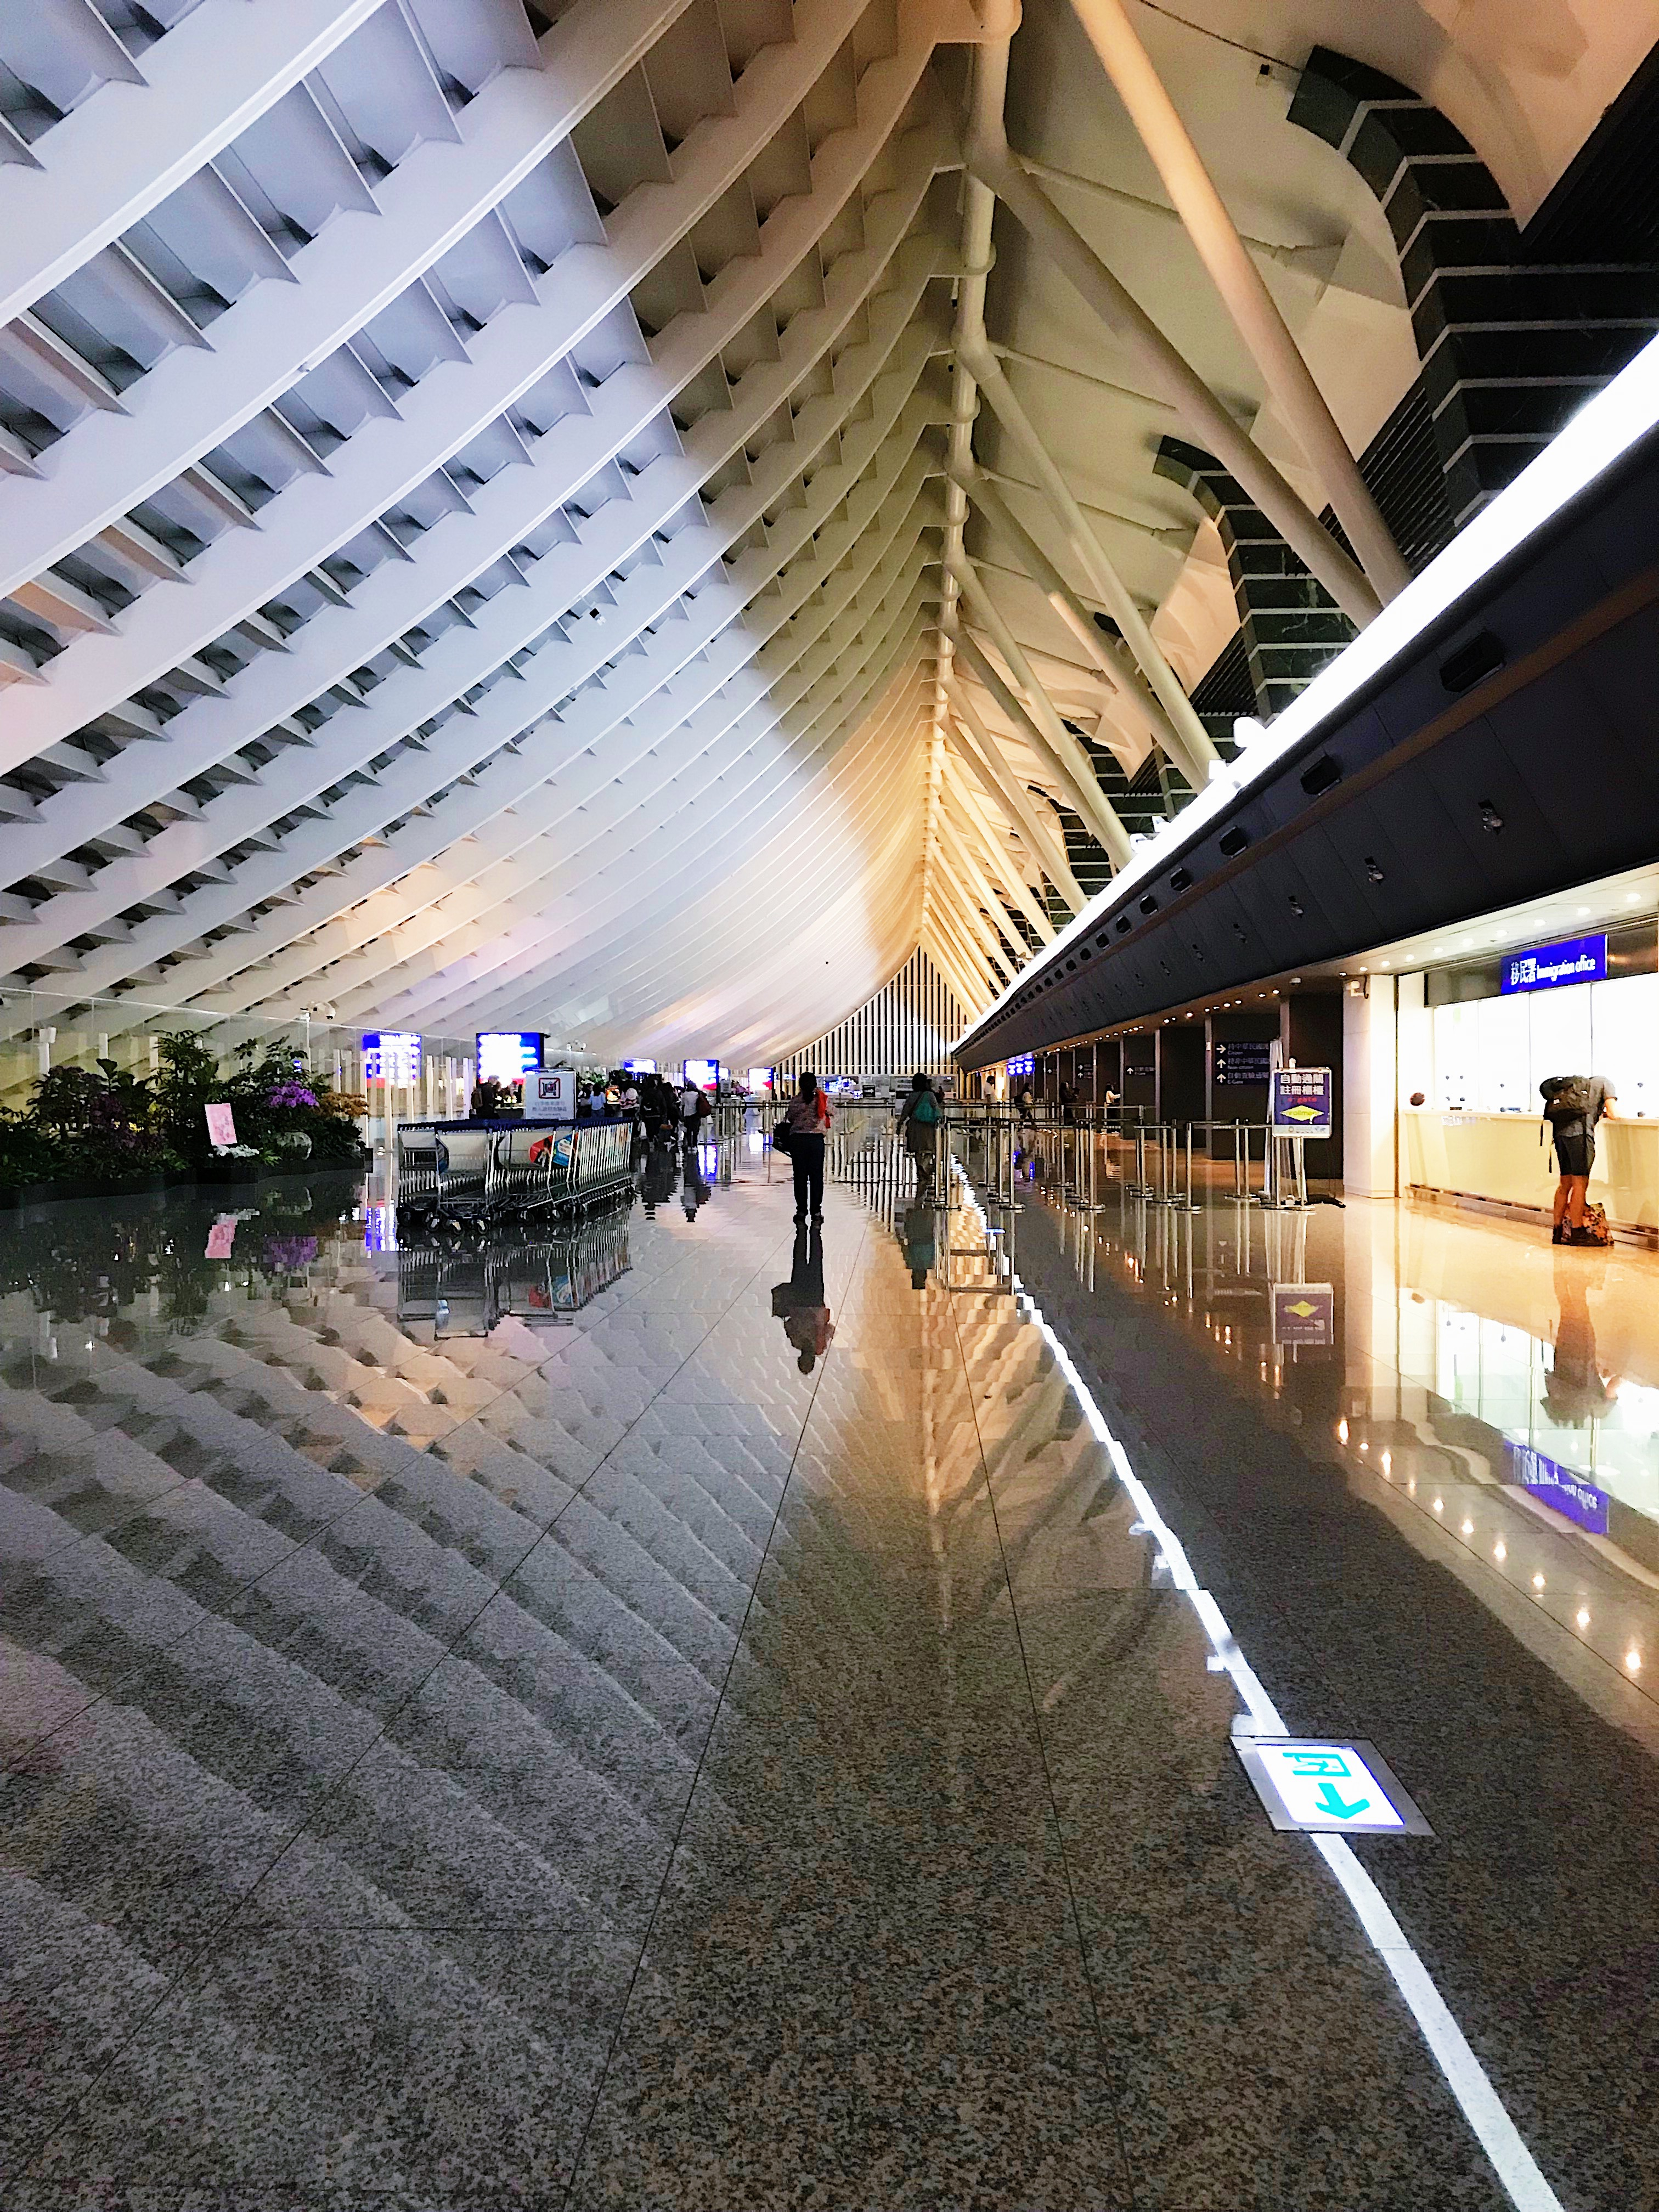 BEAUTIFUL INTERIOR. This is Taoyuan Taiwan Internation Airport's beautiful interior late at night.